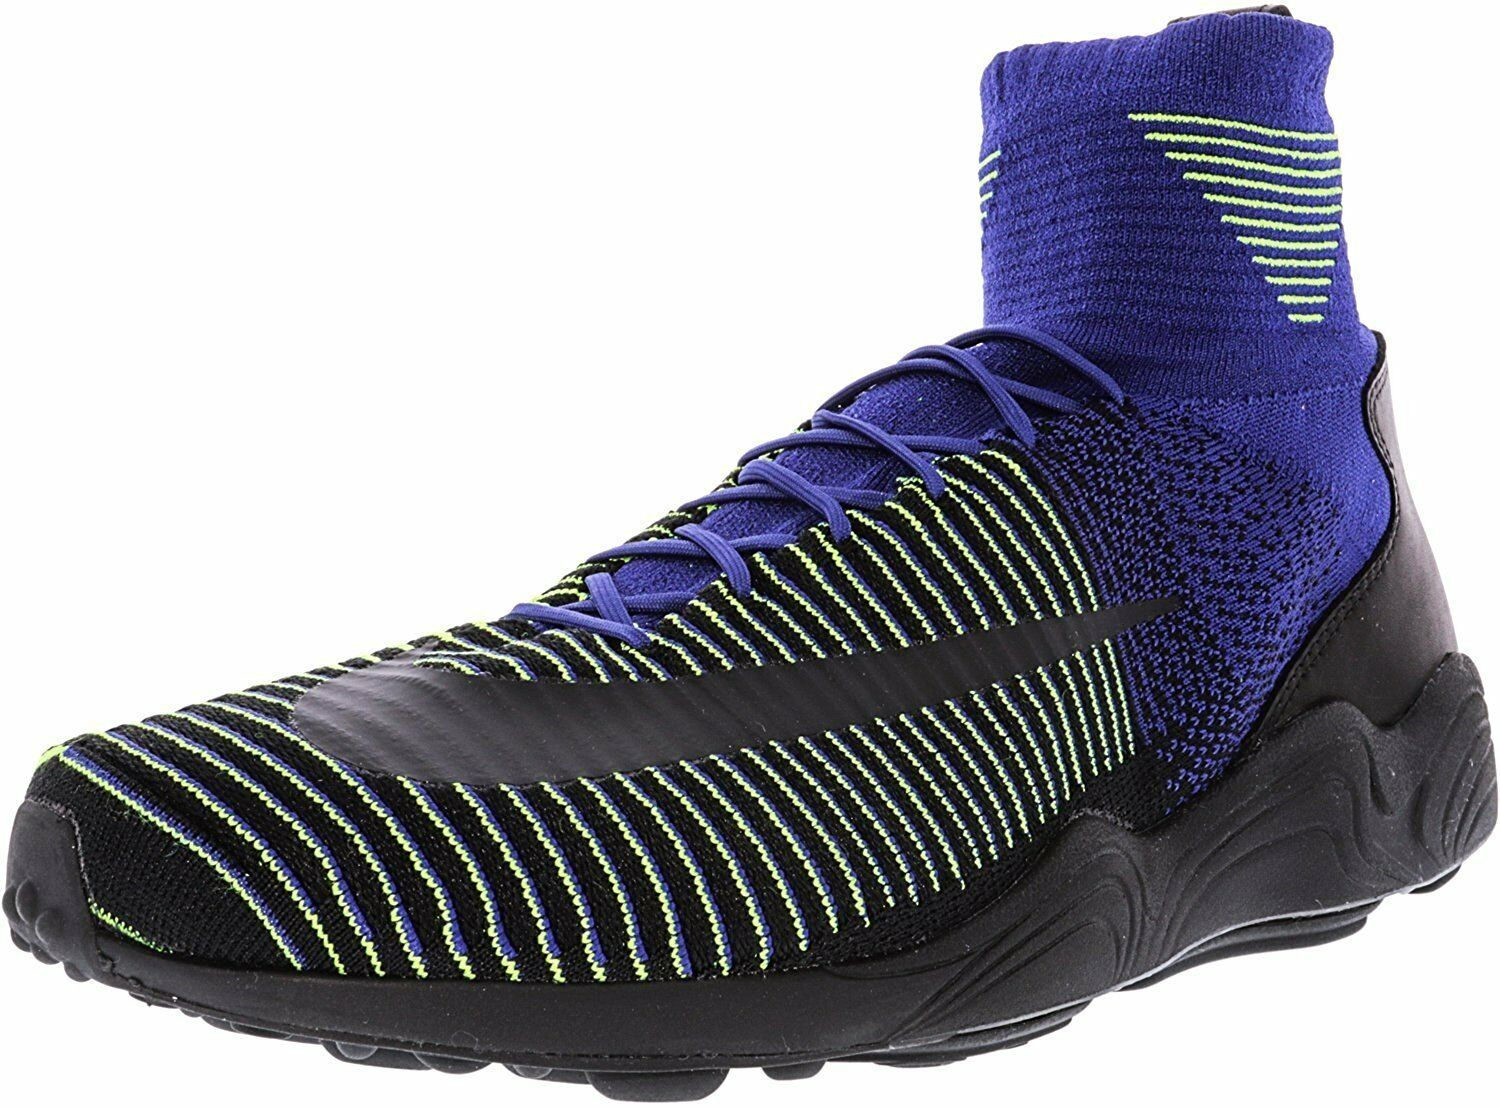 NIKE Men's Zoom Mercurial Xi Fk Hi Top Trainers shoes